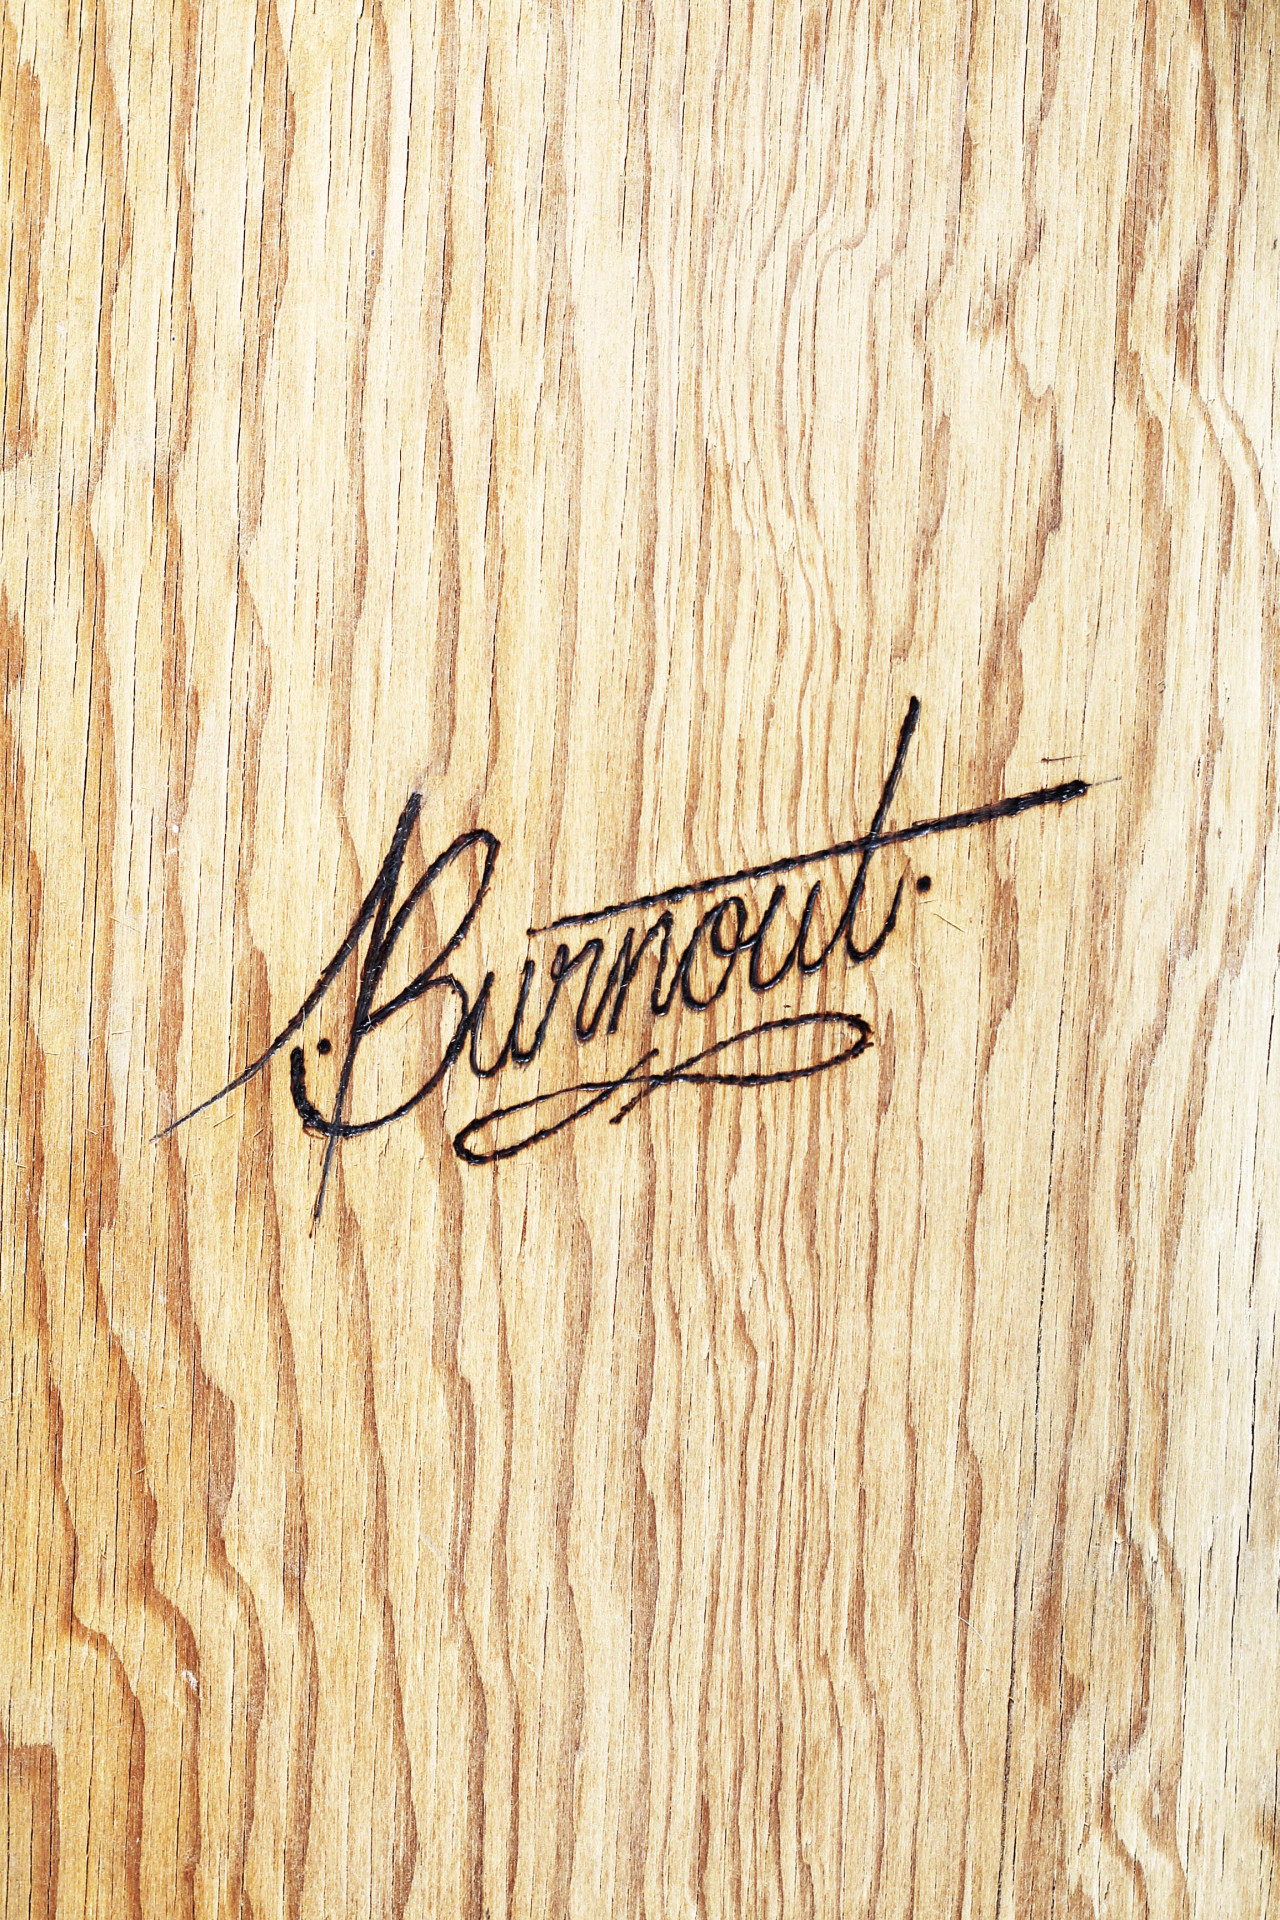 "its-a-living:  ""Burnout"" Sometimes we all burnout burned wood by: It's a living © Instagram: @itsaliving"